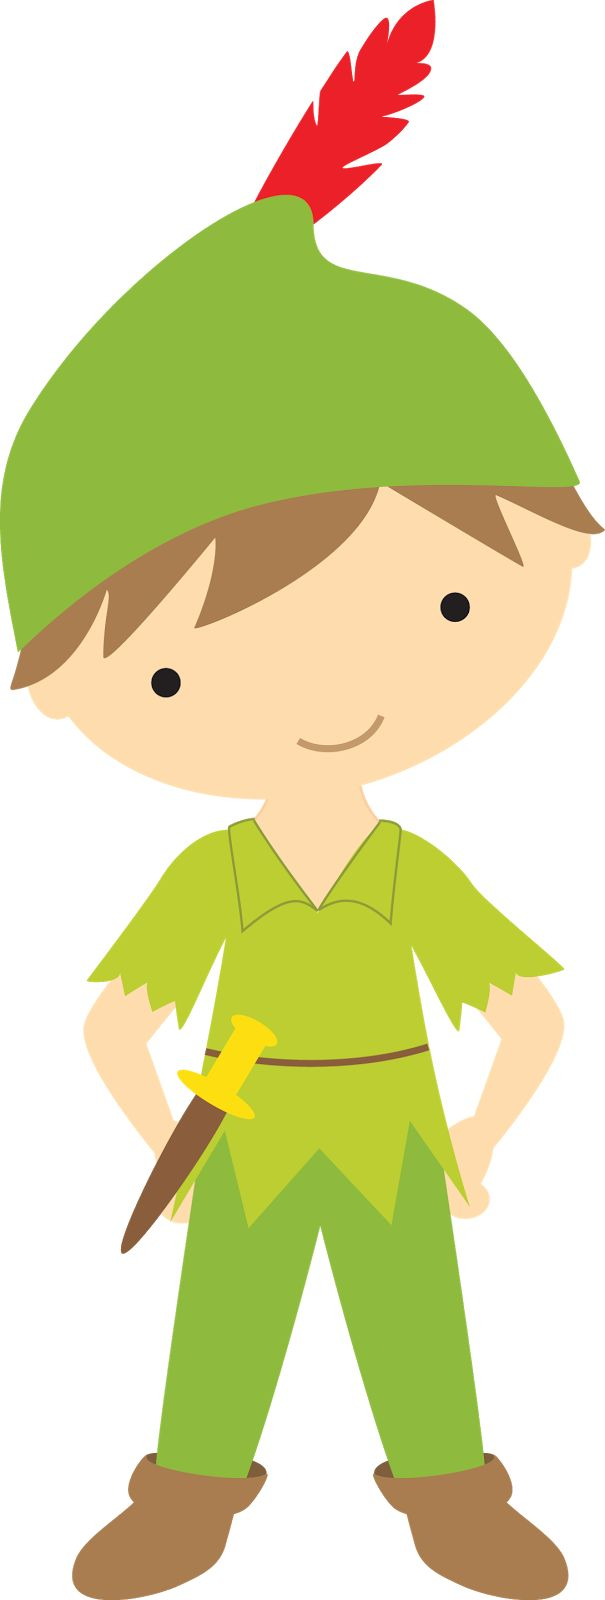 Pete the clipart peter pan. Best baby images